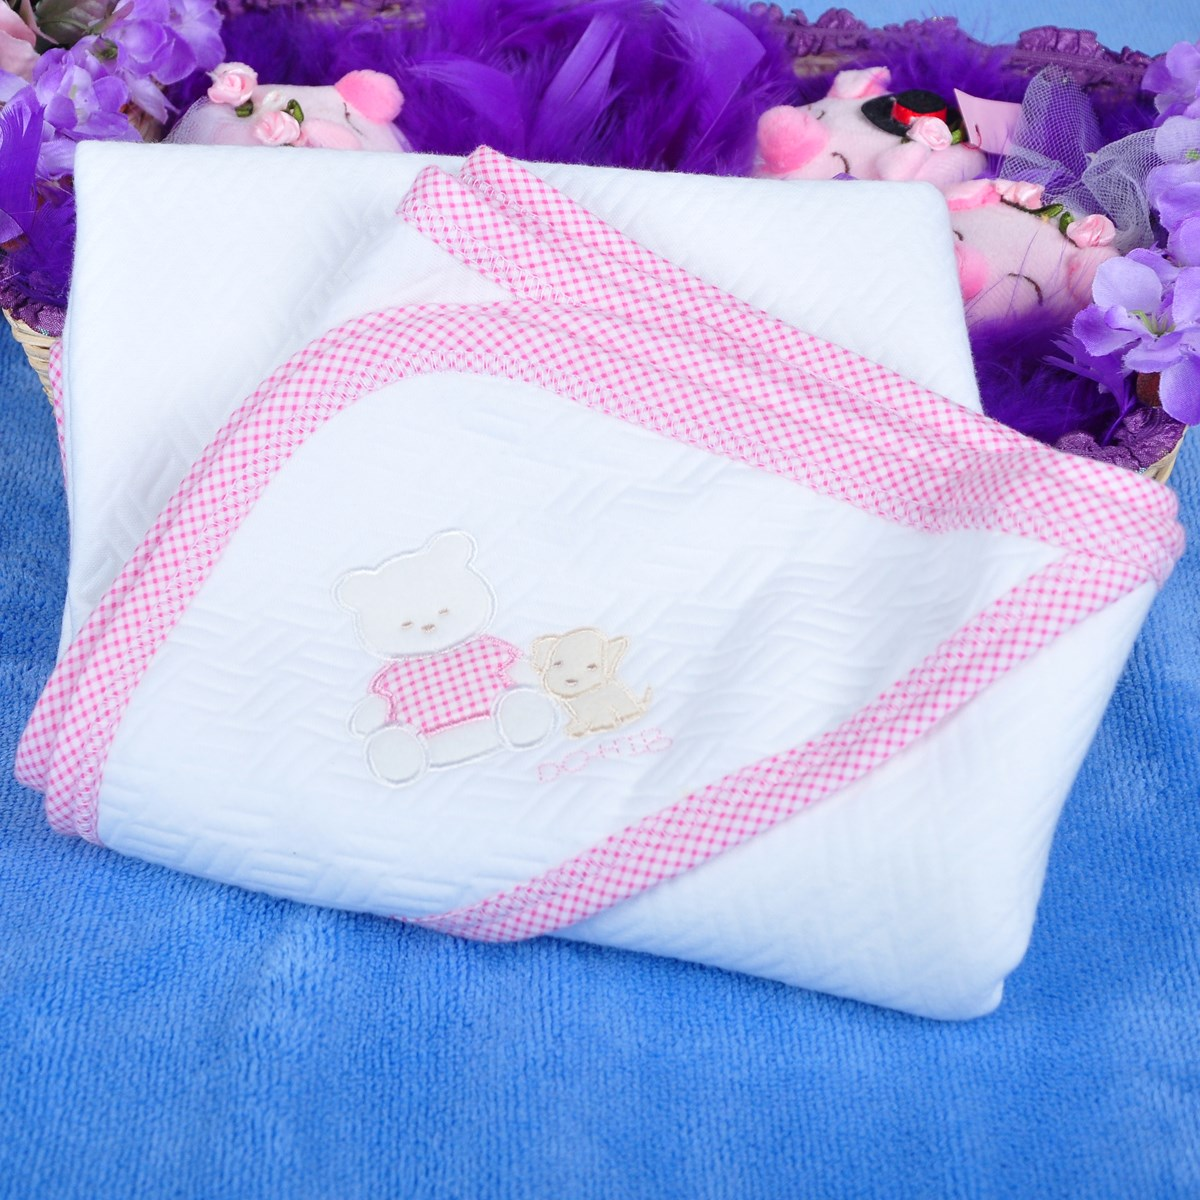 Chan mu Comfor cotton day 101506